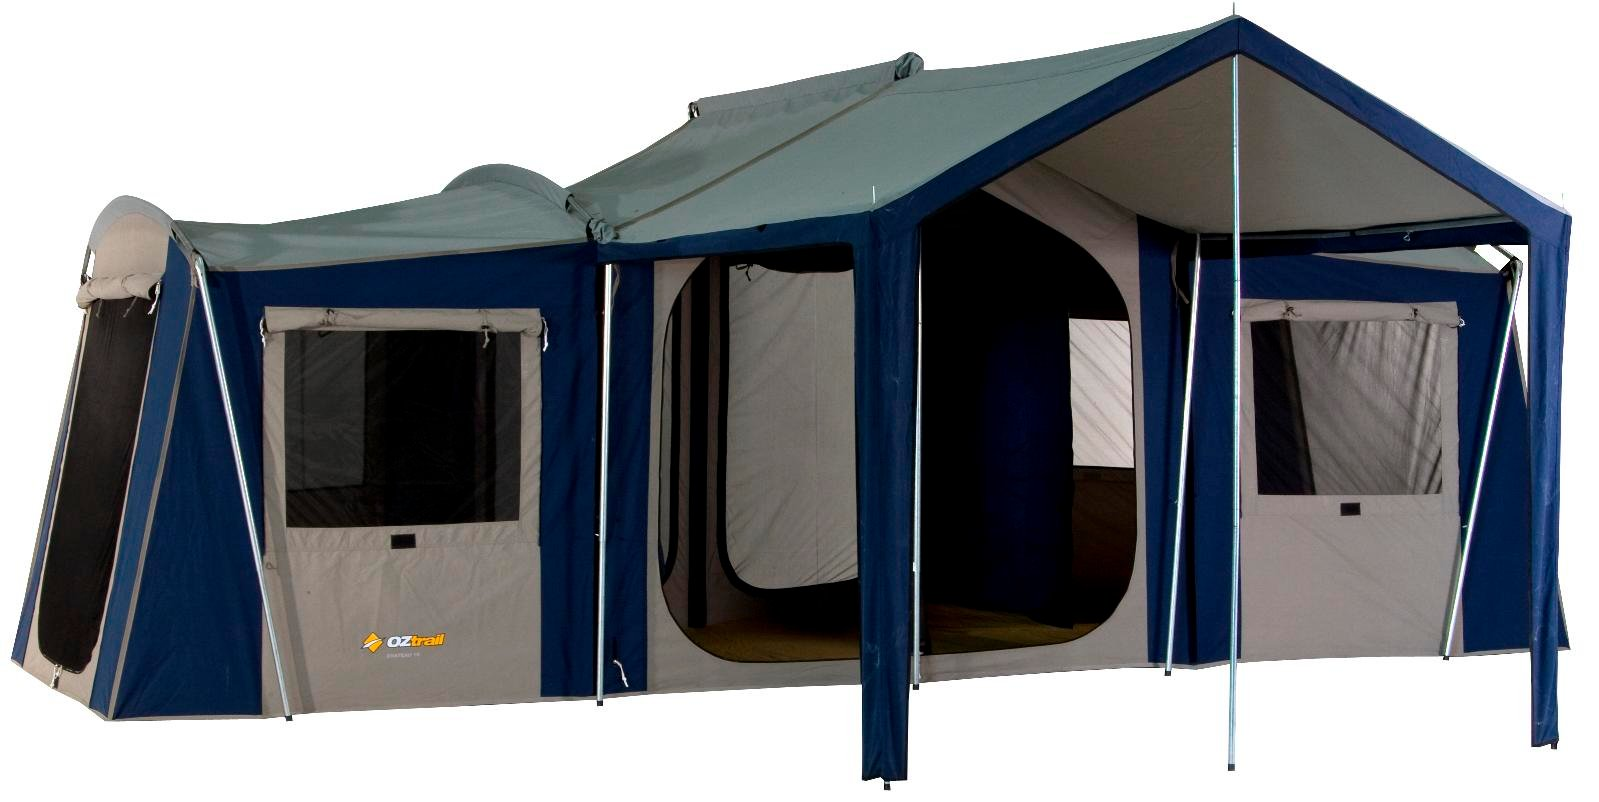 Ozark trail 16 x 16 instant cabin tent sleeps 12 joy for What is a tent cabin